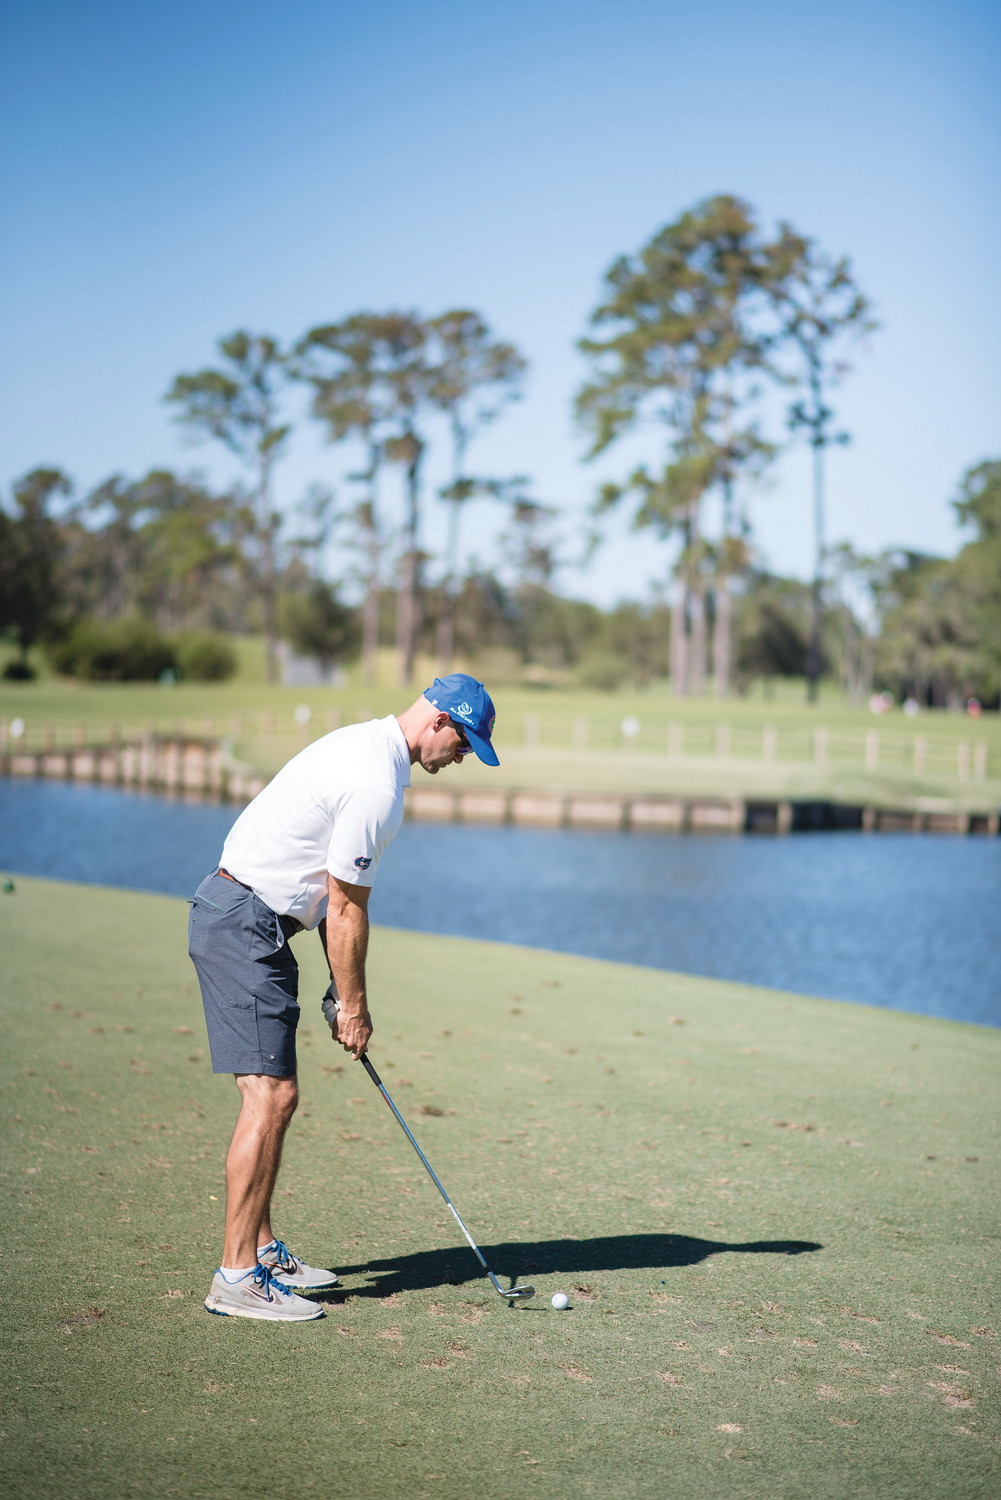 Danny Wuerffel prepares to hit a shot during the Desire Cup.